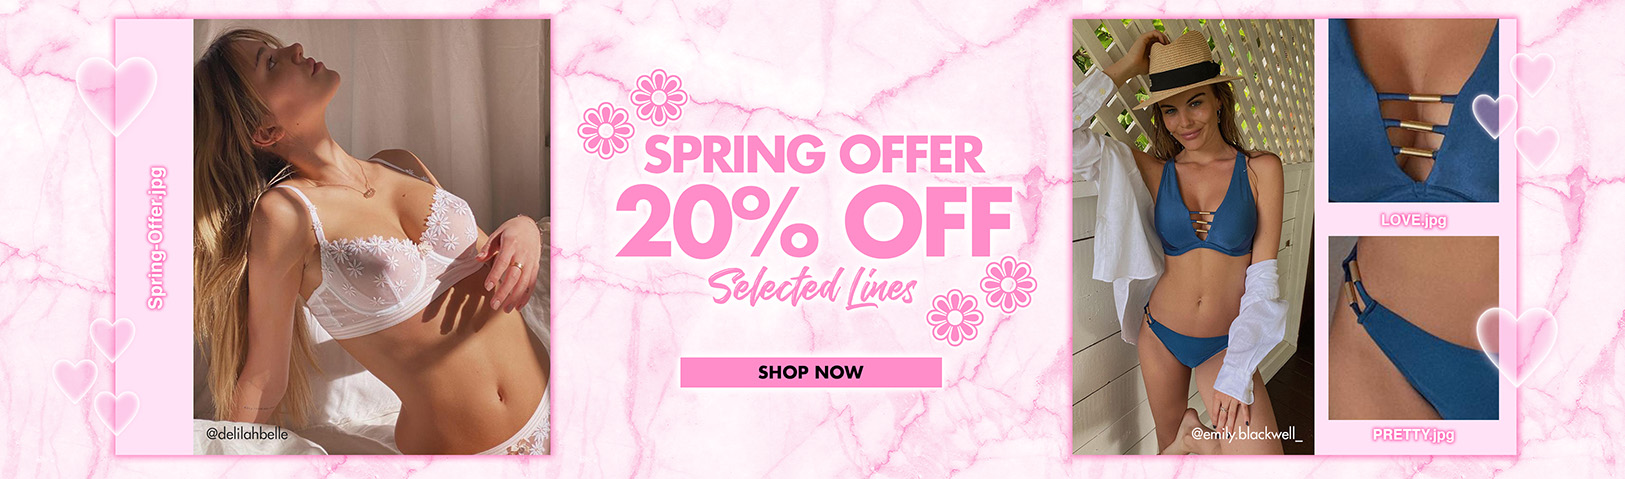 Spring offer 20% off selected lines